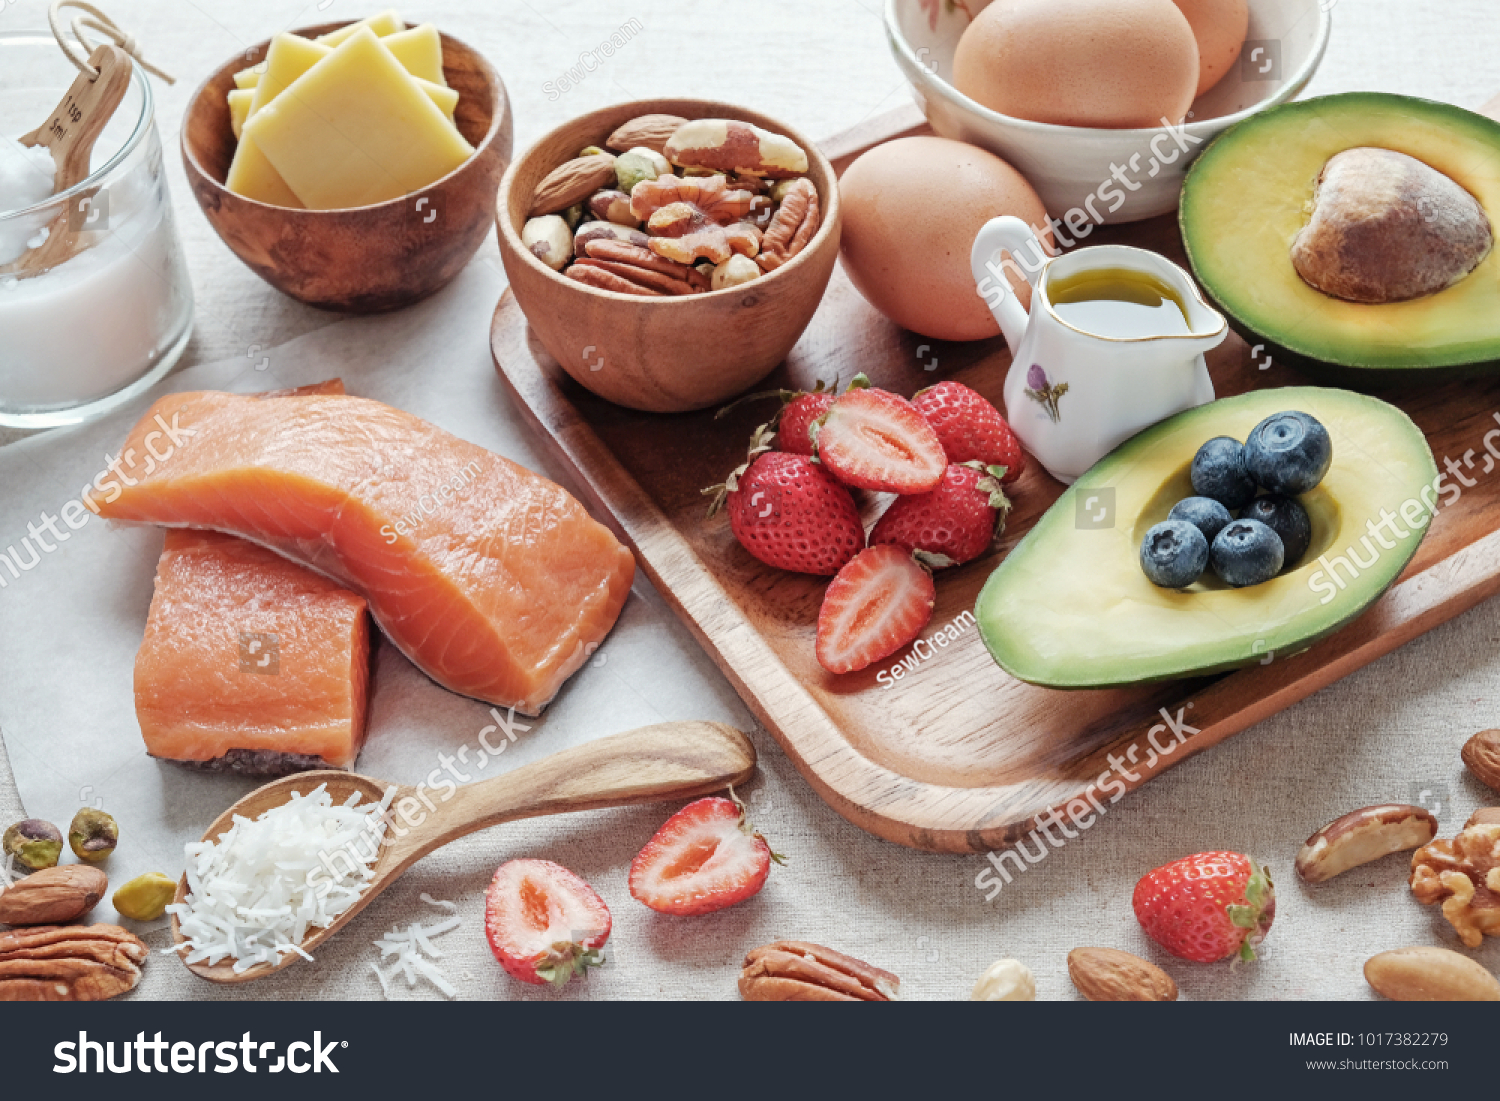 Keto, ketogenic diet, low carb, high good fat ,  healthy food, heart health #1017382279